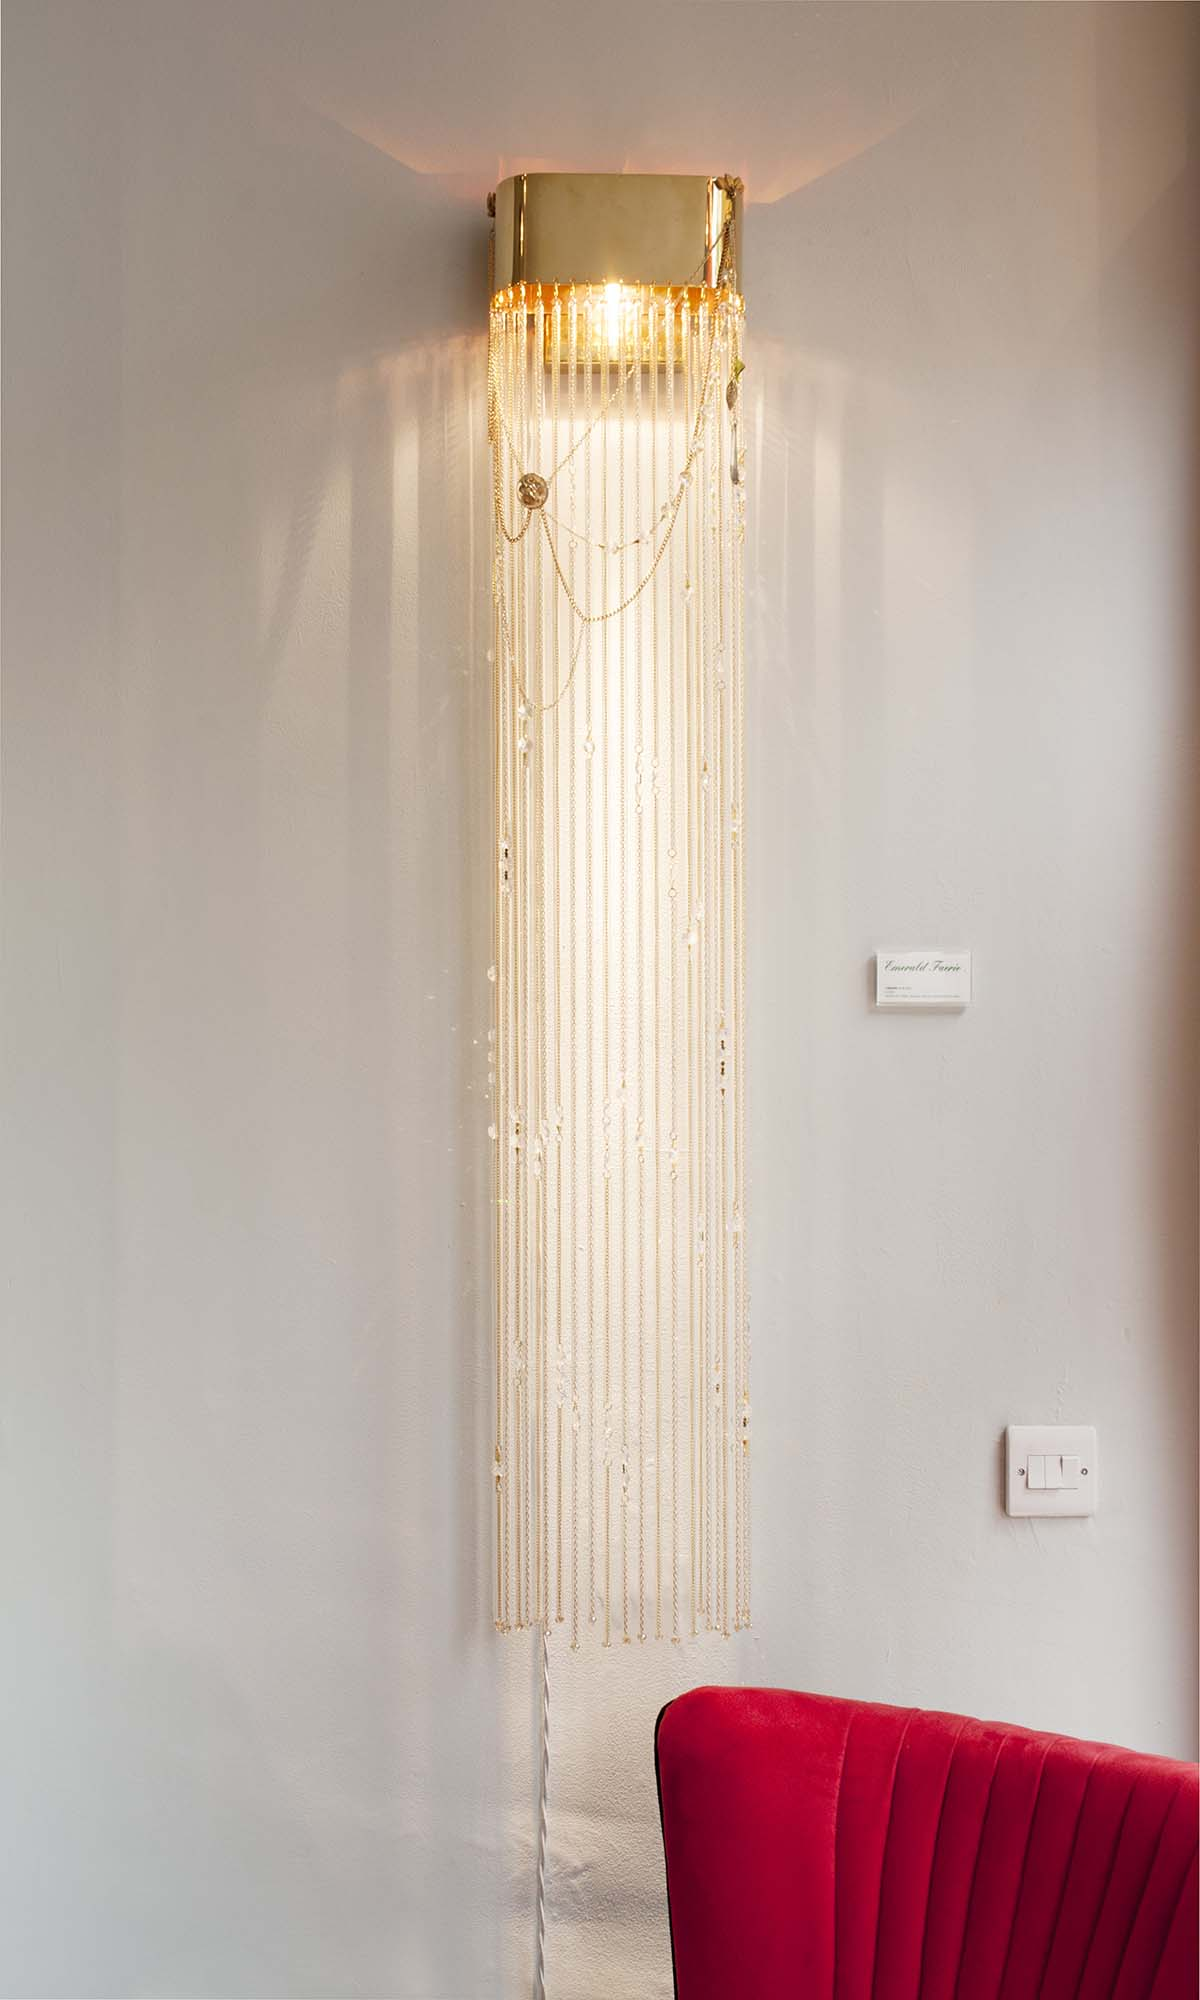 Celeste wall light by Emerald Faerie. At the Gathering goddess vintage boutique.